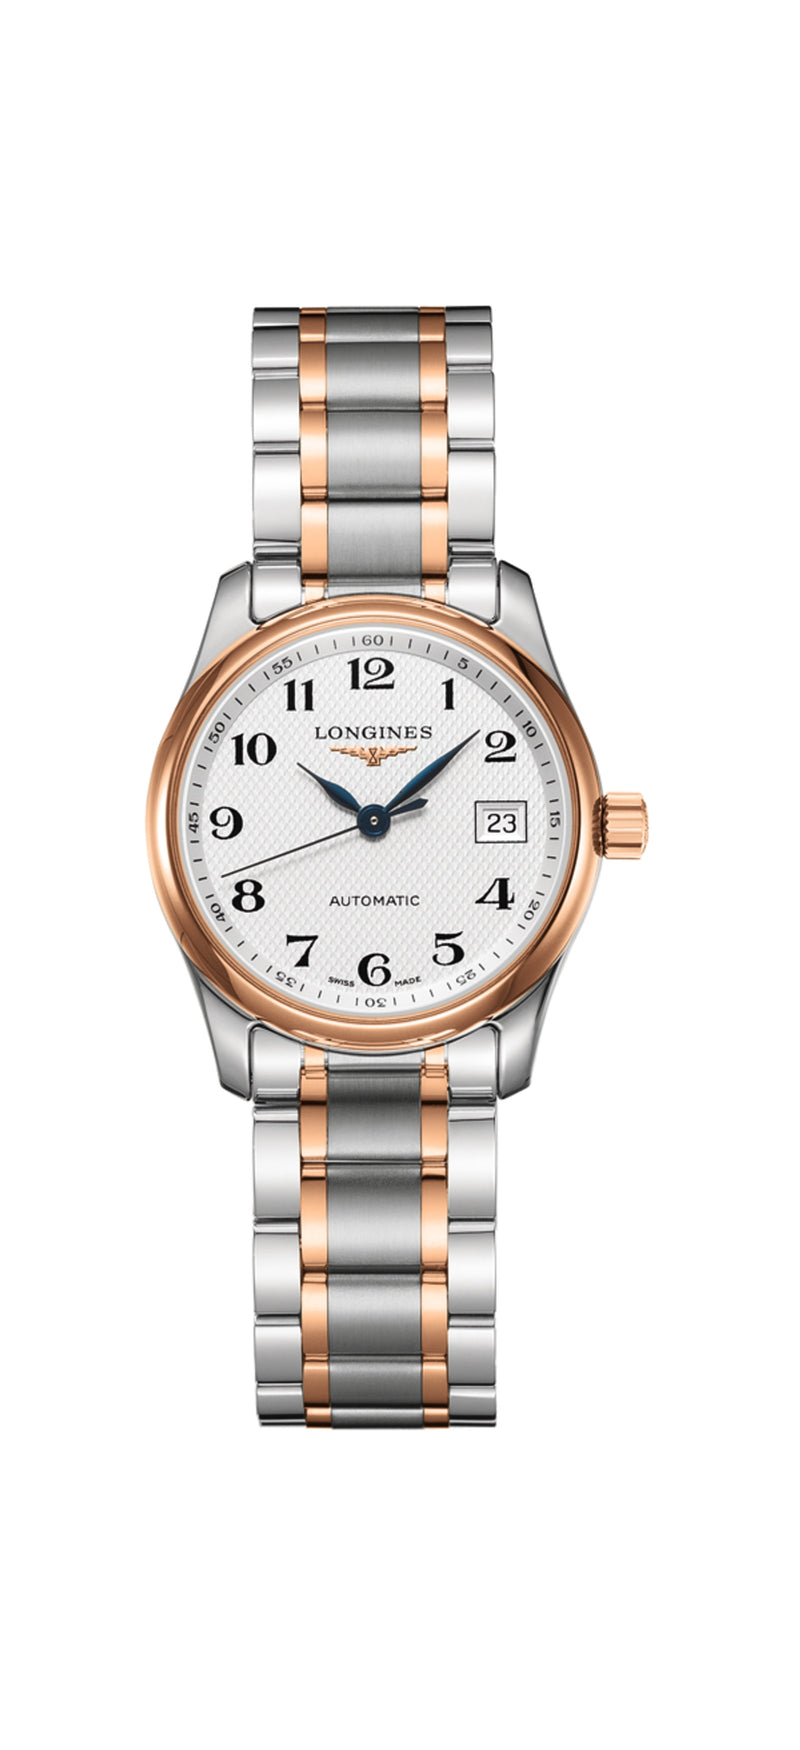 Longines L2.257.5.79.7 Master Collection, naisten rannekello - Longines - Laatukoru